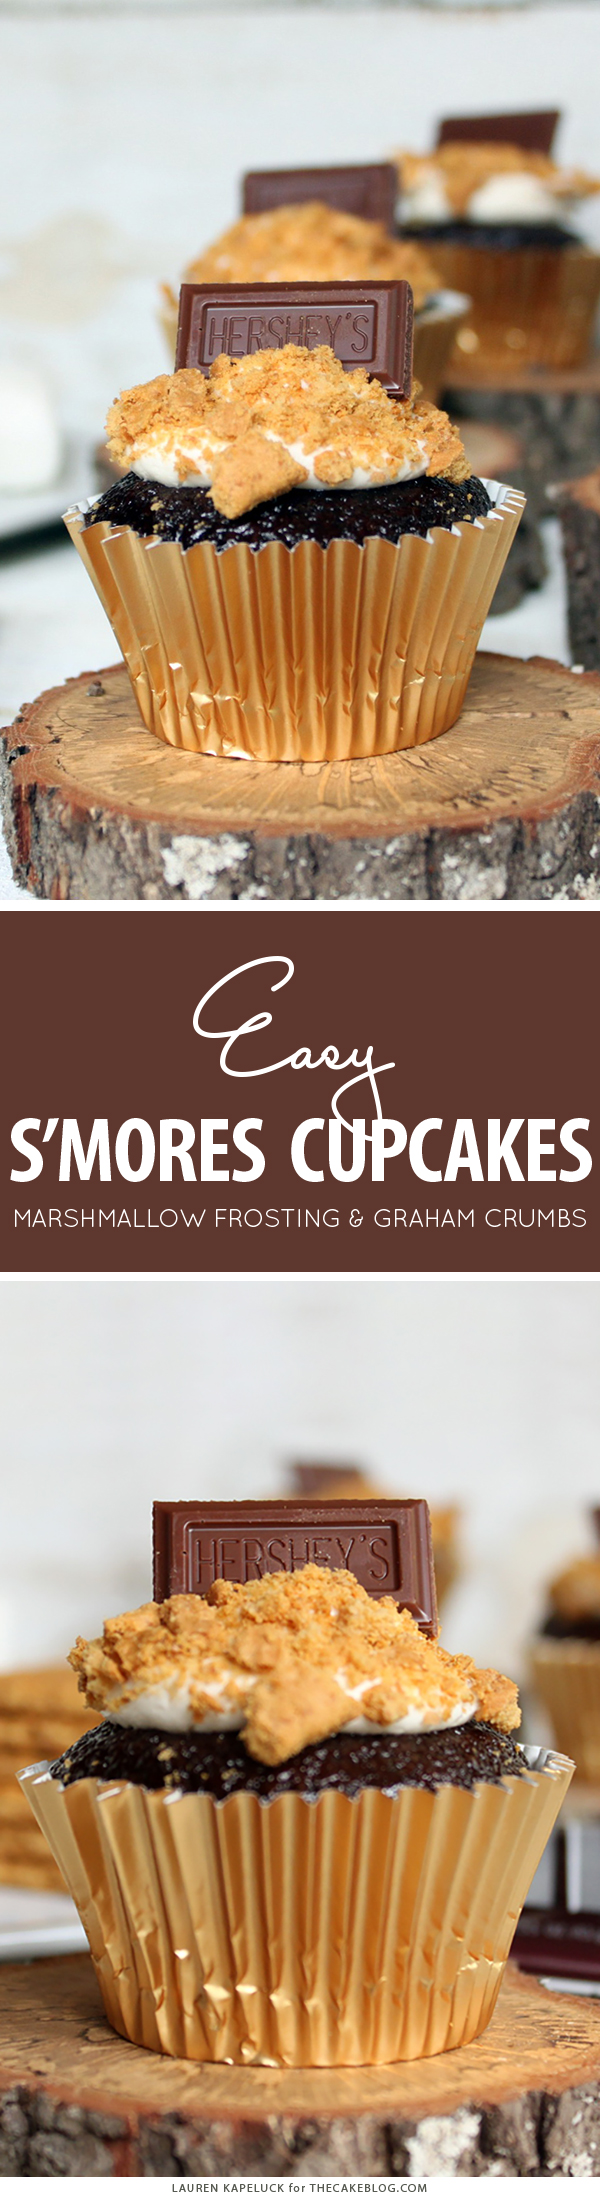 S'mores Cupcakes - easy s'more inspired cupcake recipe with chocolate cupcakes, marshmallow frosting, graham cracker crumbs and a hunk of milk chocolate | by Lauren Kapeluck for TheCakeBlog.com